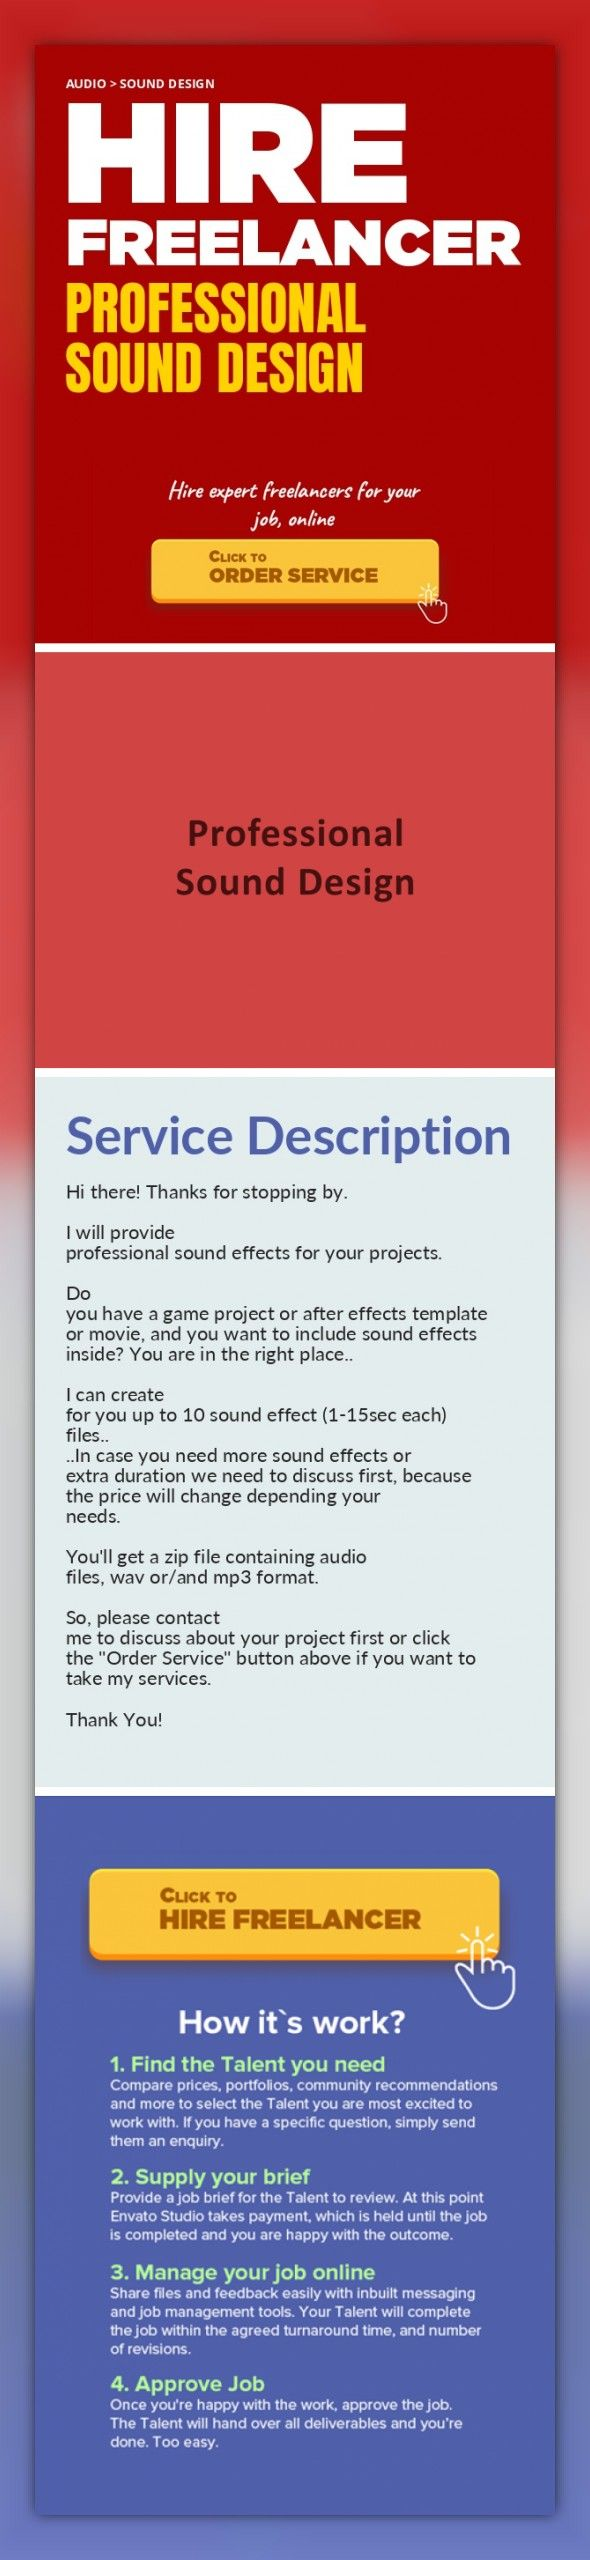 Professional Sound Design Audio, Sound Design   Hi there! Thanks for stopping by.    I will provide professional sound effects for your projects.    Do you have a game project or after effects template or movie, and you want to include sound effects inside? You are in the right place..    I can create for you up to 10 sound effect (1-15sec each) files..  ..In case you need more sound effects or ex...